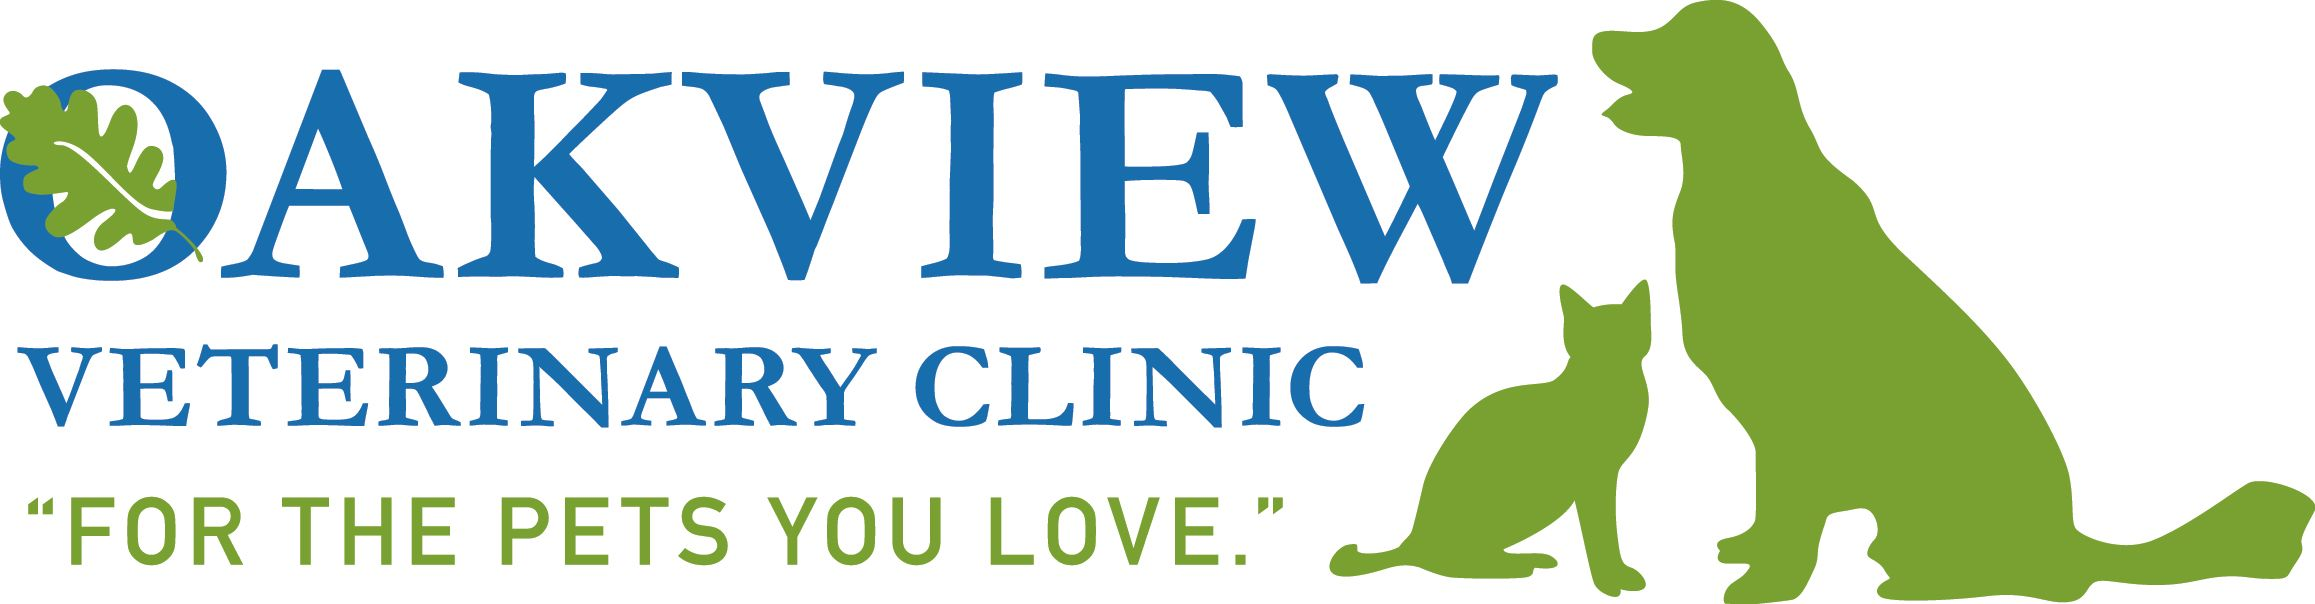 Oakview Veterinary Clinic